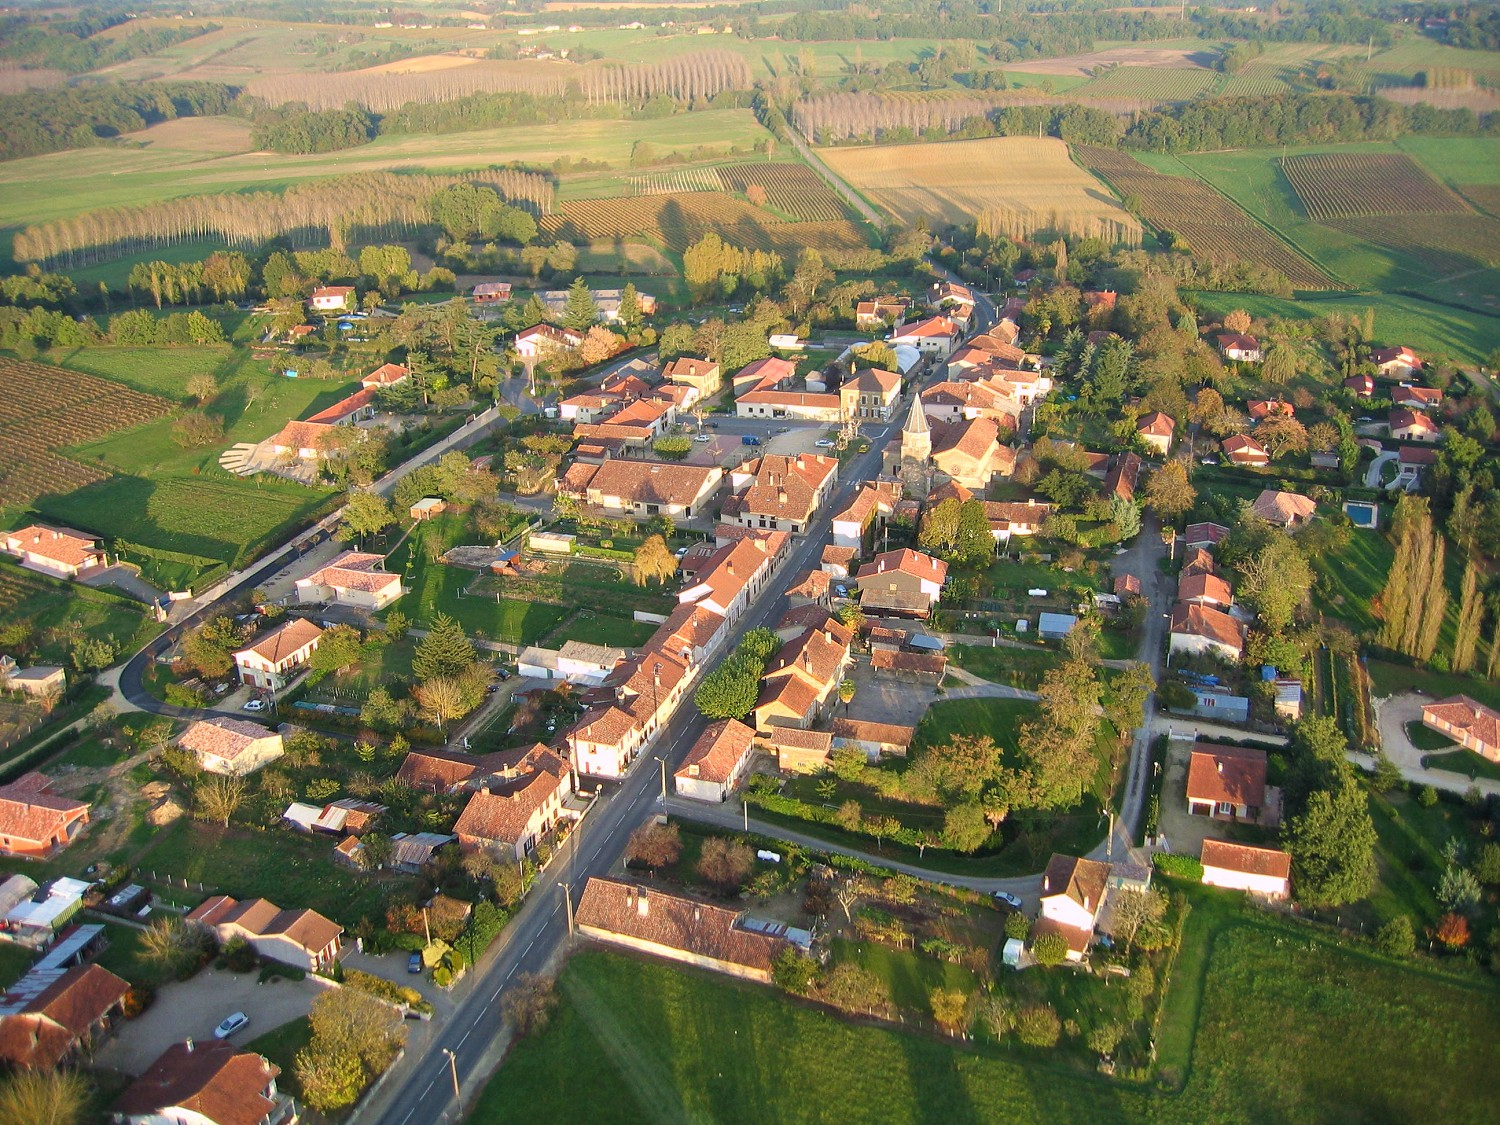 Photo aerienne en grand format de Bretagne d'Armagnac